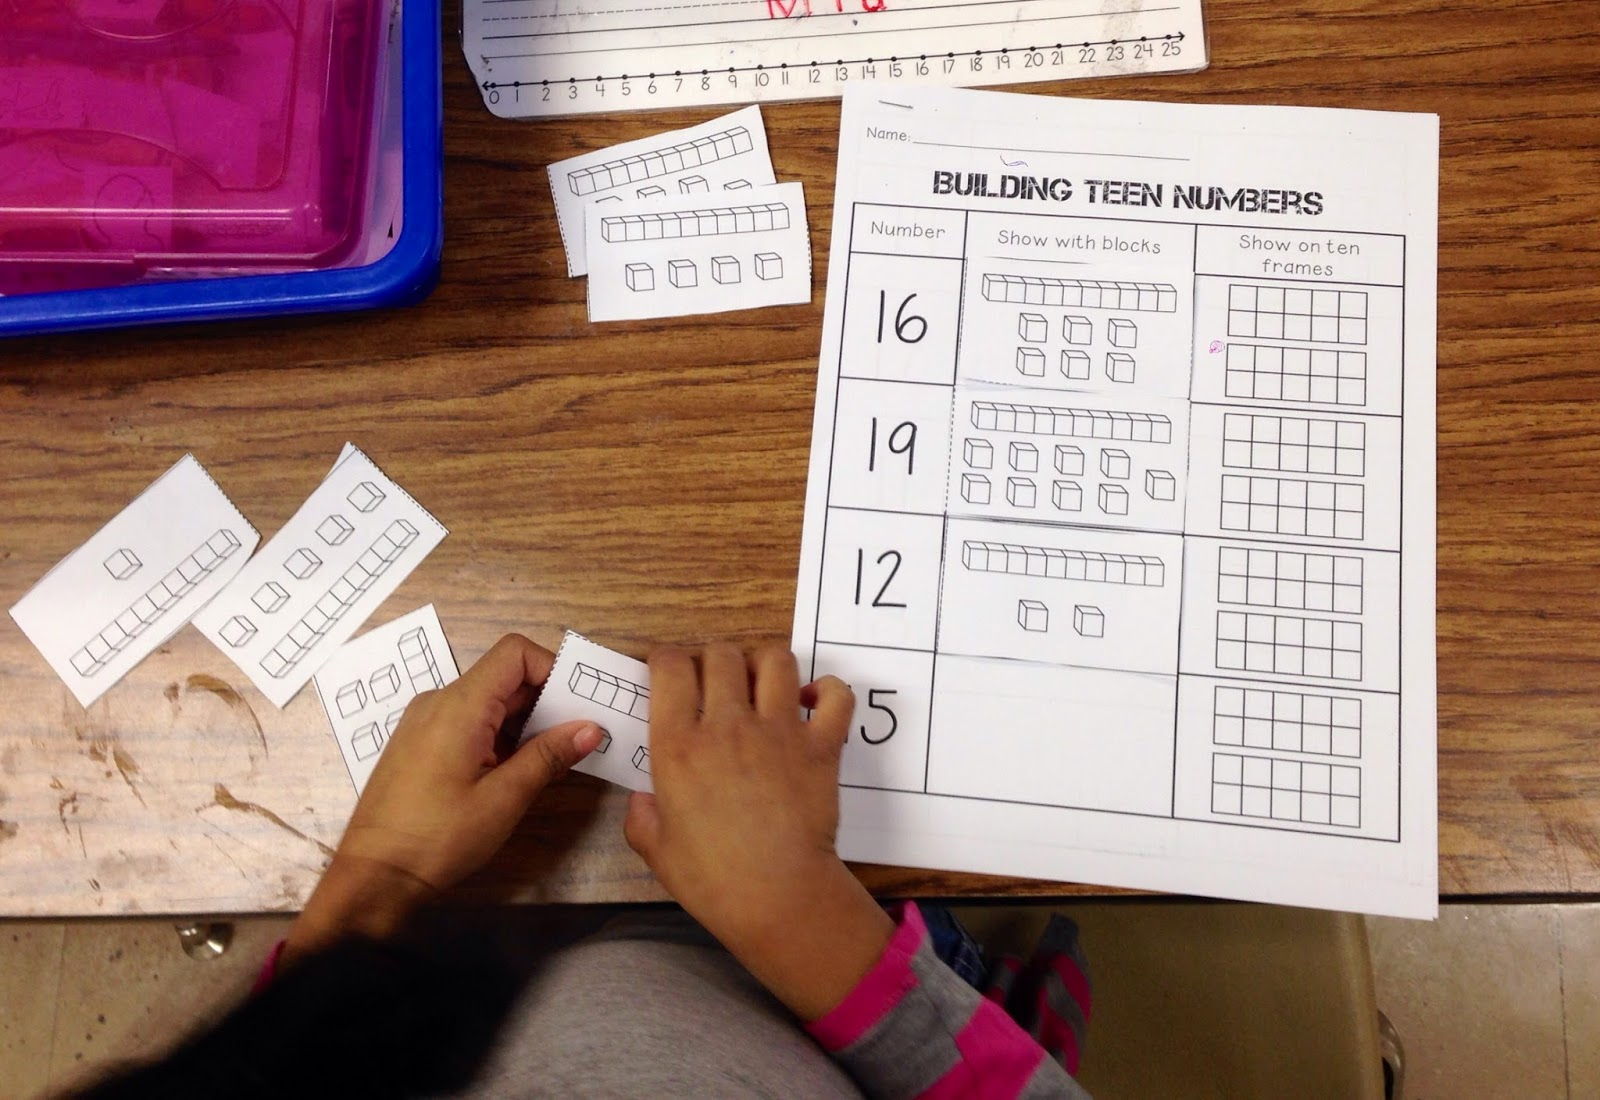 we took all of our knowledge with ten frames and base ten blocks and to show teens numbers